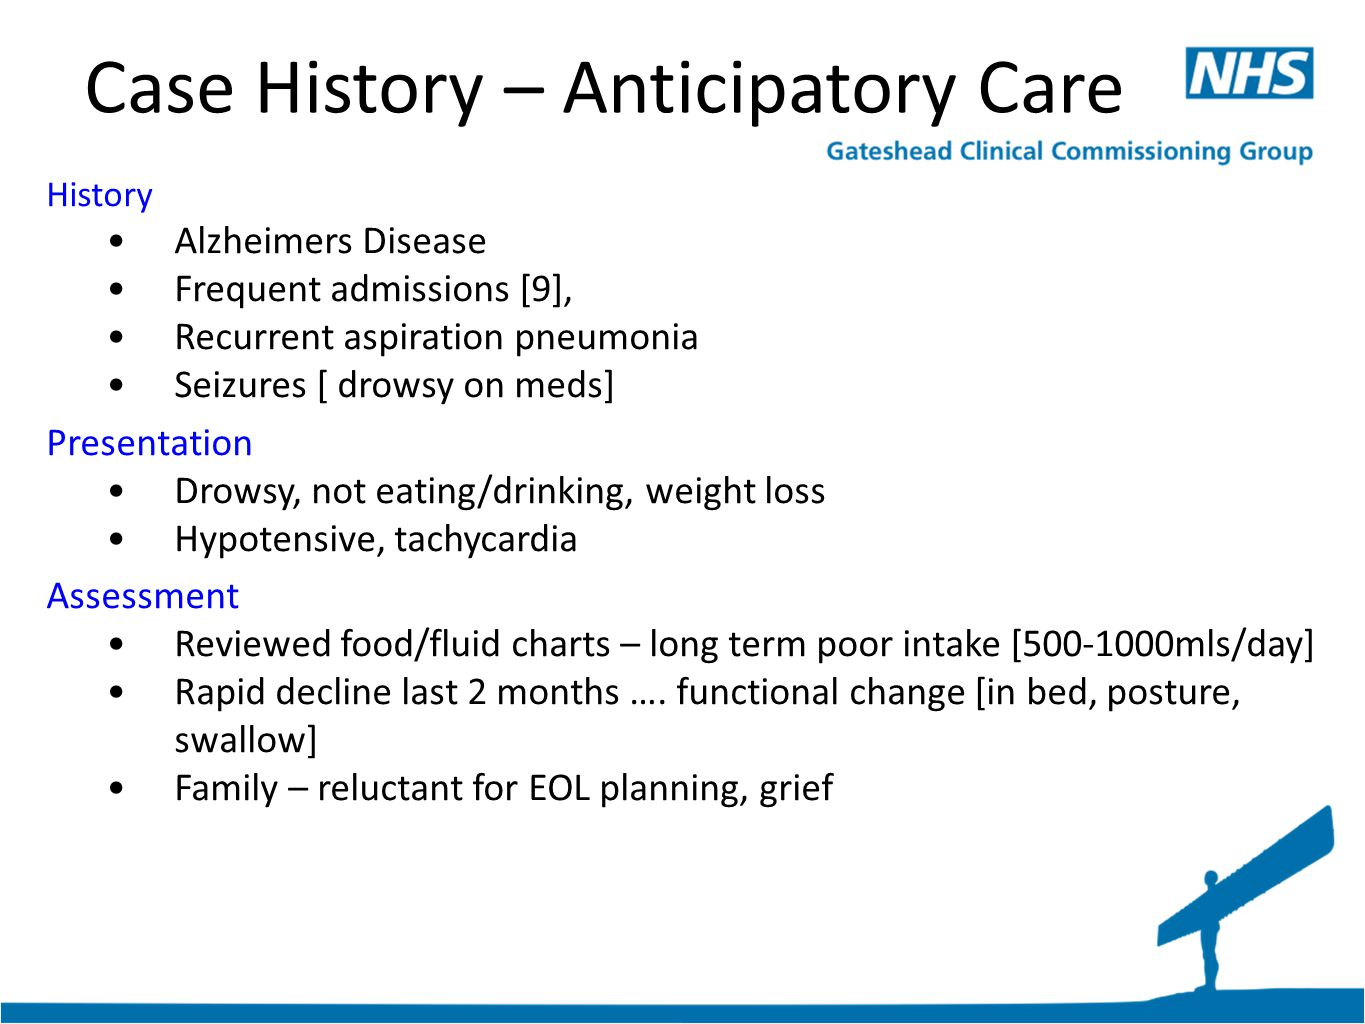 Case History – Anticipatory Care History Alzheimers Disease Frequent admissions [9], Recurrent aspiration pneumonia Seizures [ drowsy on meds] Presentation Drowsy, not eating/drinking, weight loss Hypotensive, tachycardia Assessment Reviewed food/fluid charts – long term poor intake [500-1000mls/day] Rapid decline last 2 months ….